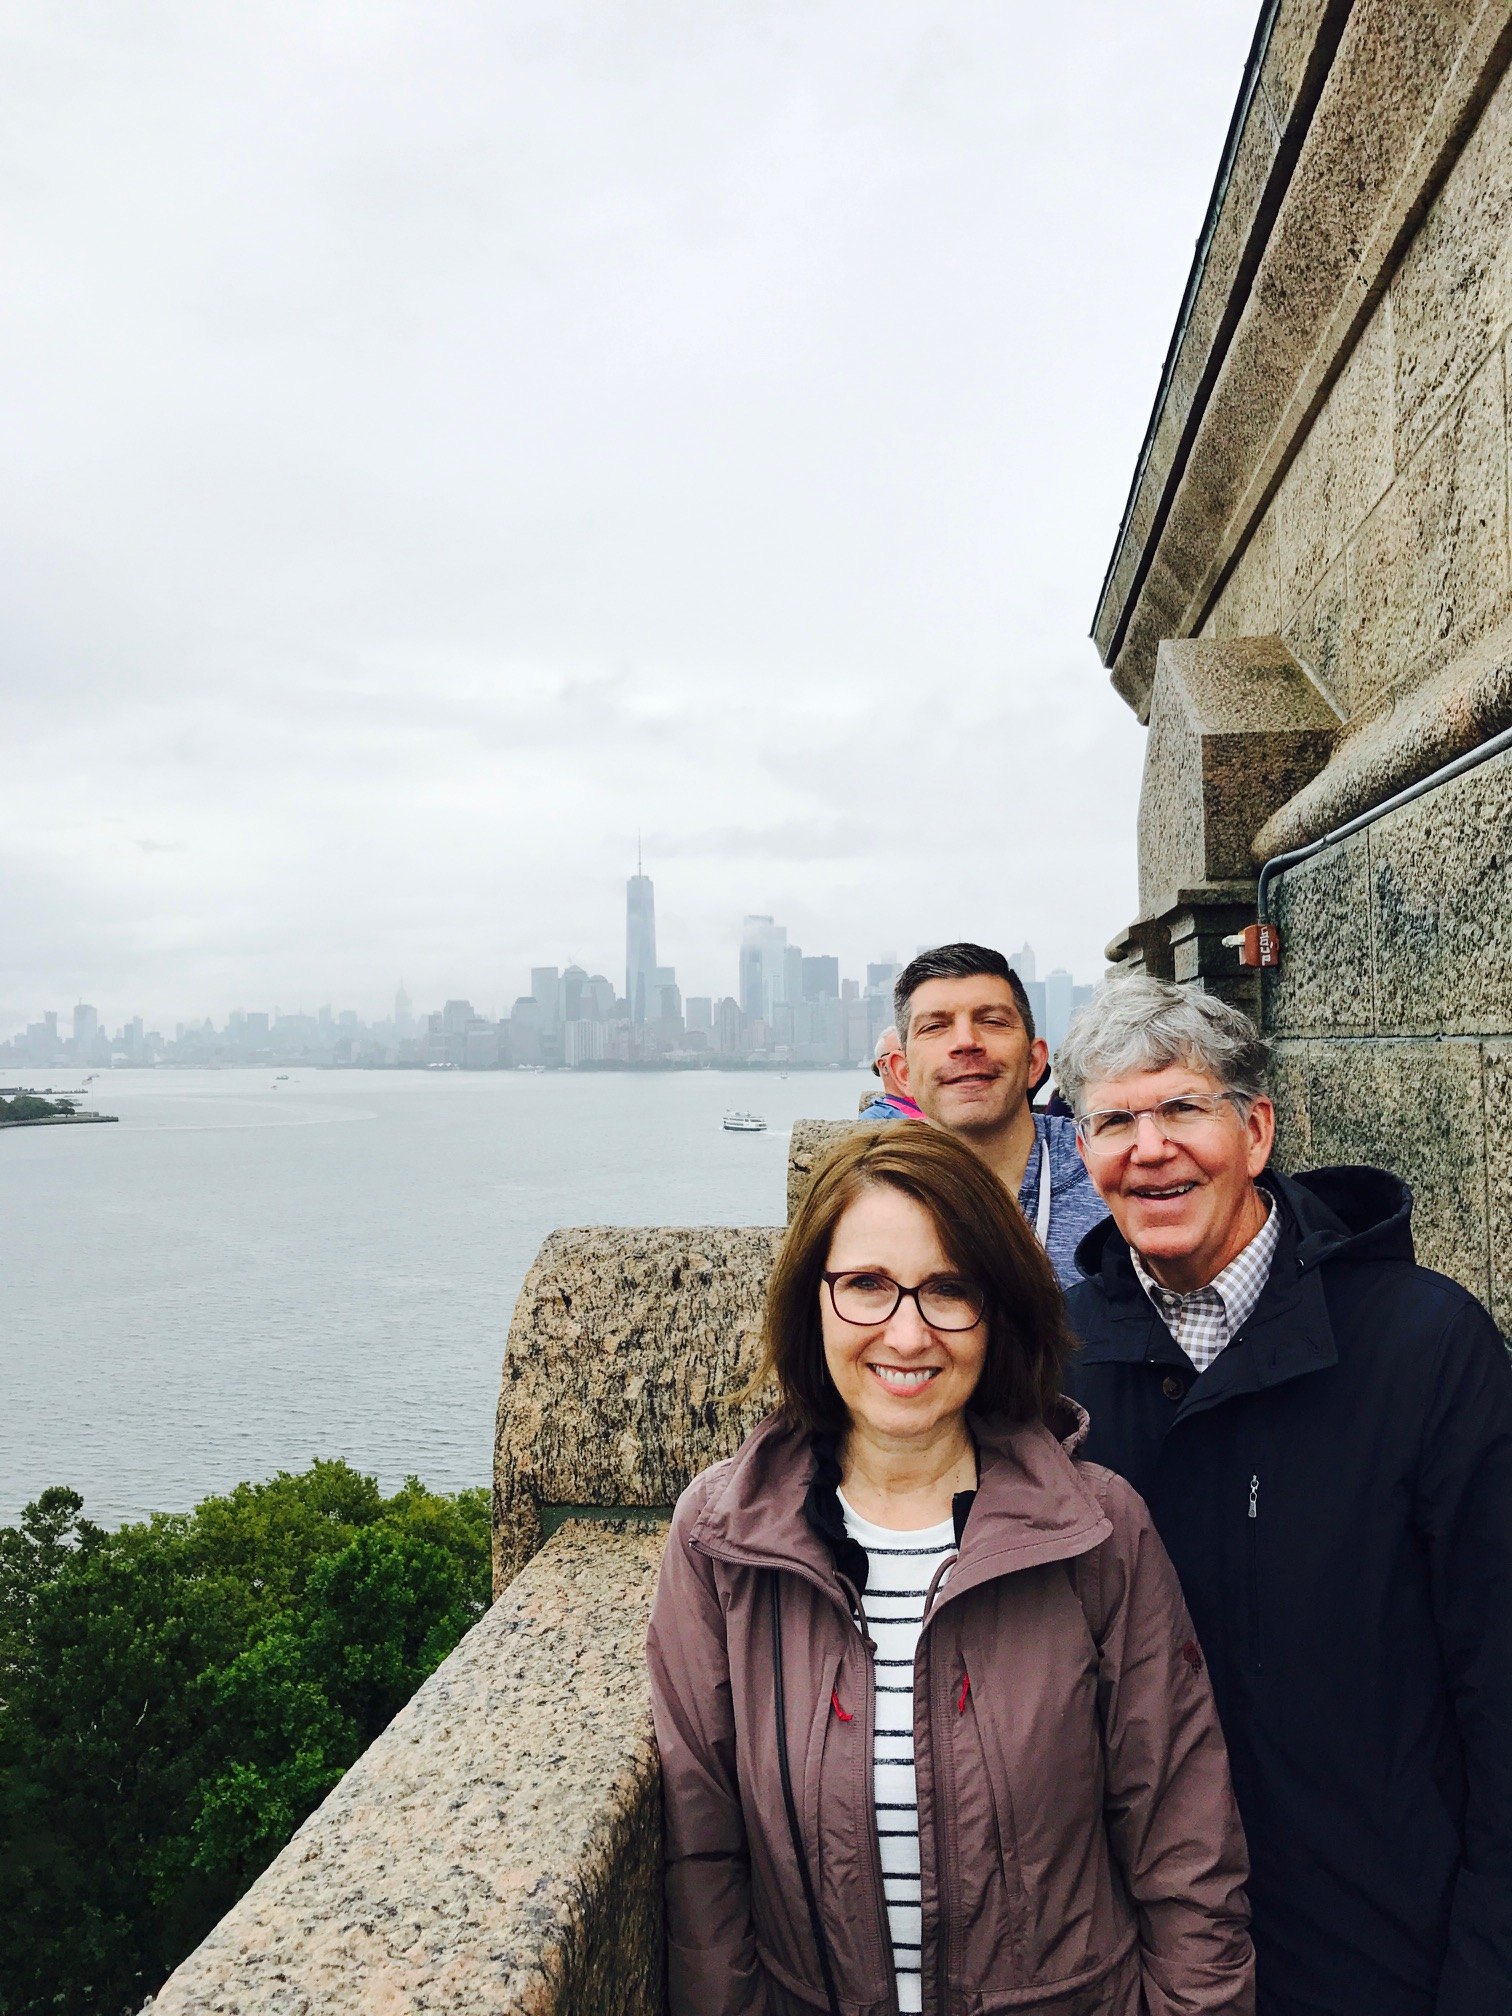 Susan, John, and Fred with the NYC skyline in the background